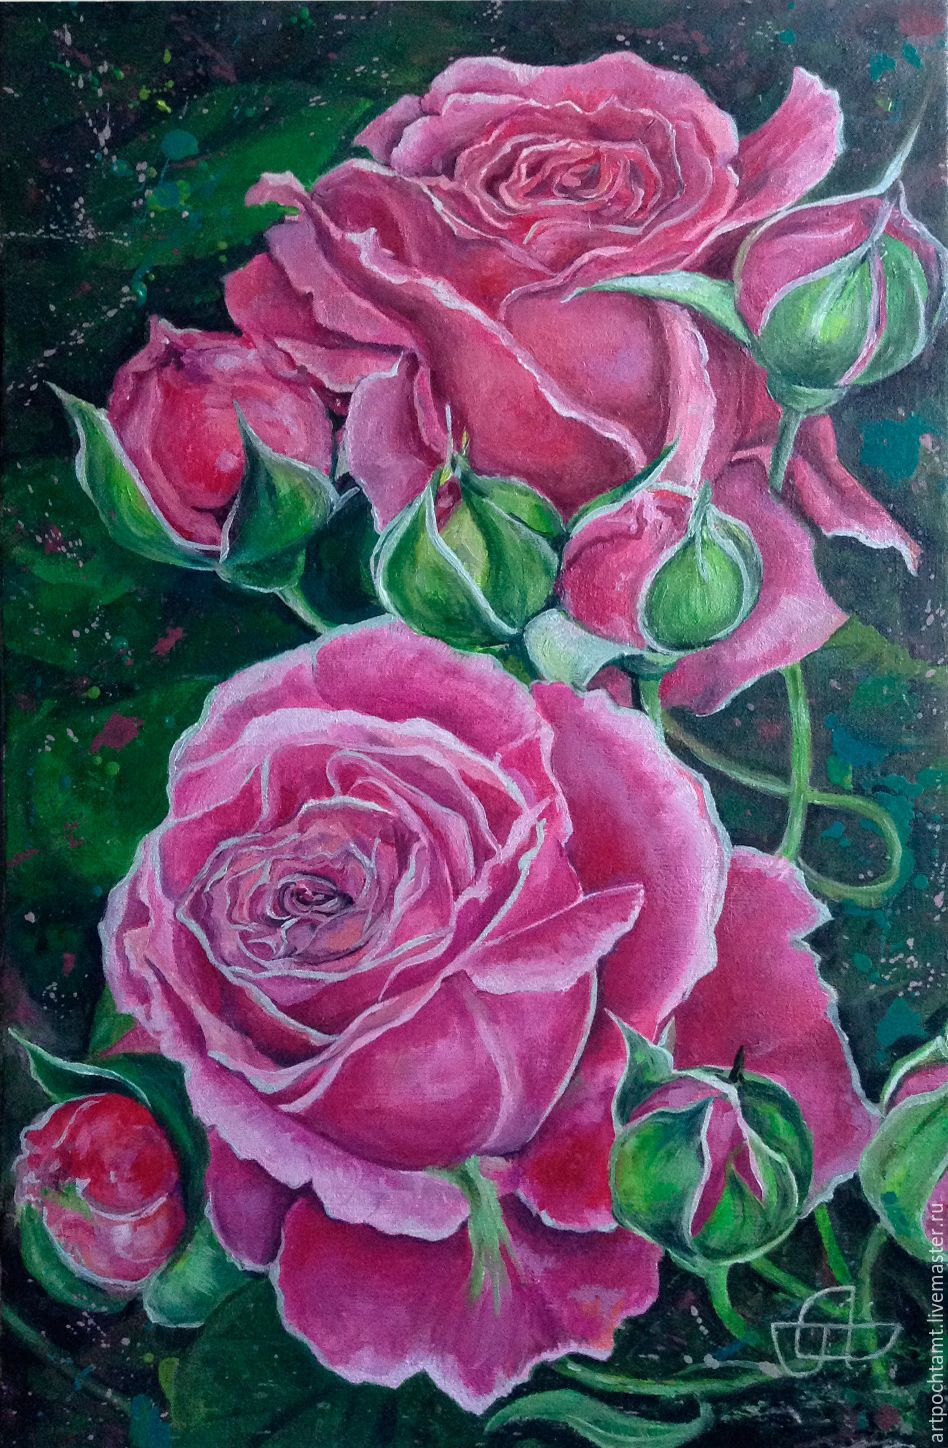 Pink roses shop online on livemaster with shipping aw1x7com online shopping on my flower paintings handmade order pink roses painting for the soul livemaster mightylinksfo